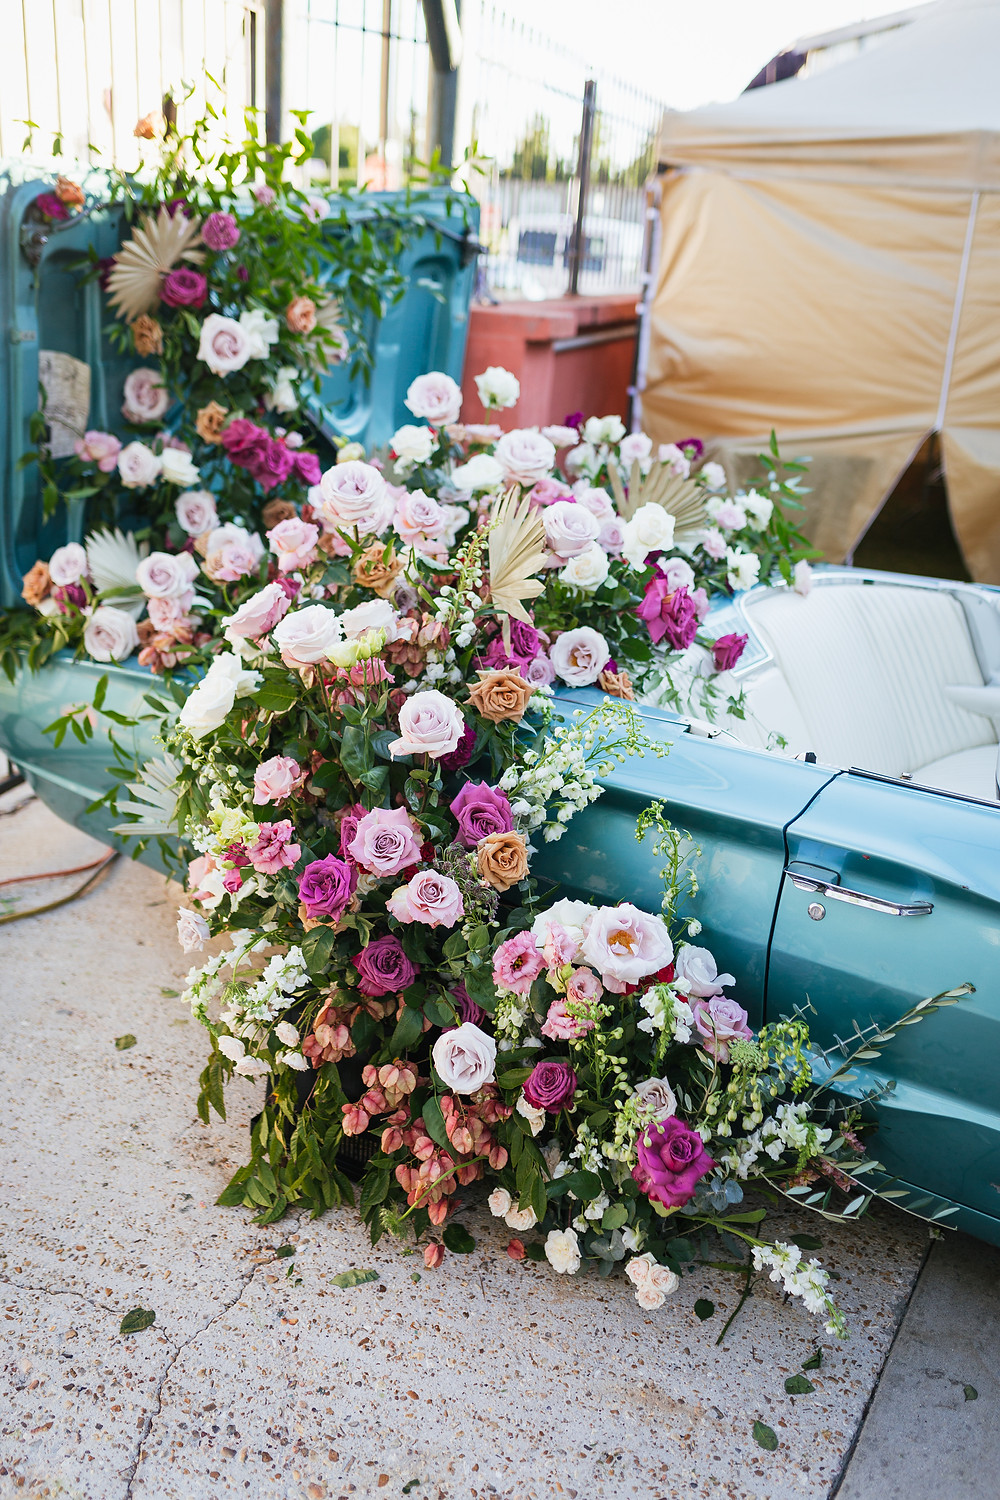 Lovegood Wedding & Event Rentals, New Orleans Vintage Rental Company for Corporate, Parties, and Weddings | Lounge Furniture in NOLA, Specialty Rentals, Decor across the Southeast, Vintage Car Covered in Florals